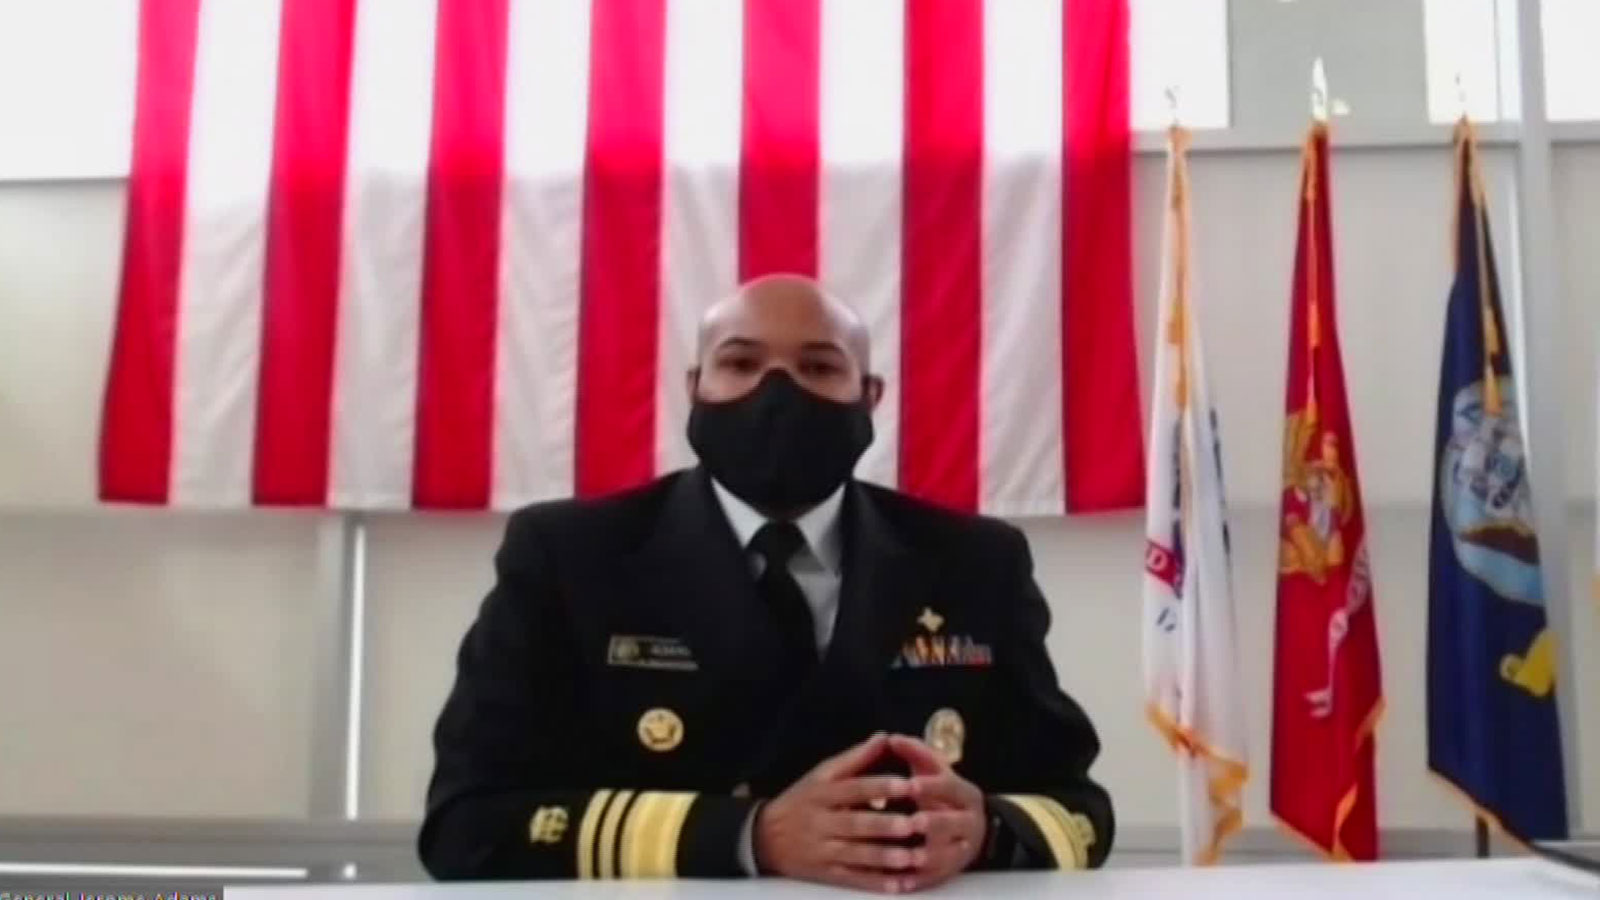 US Surgeon General Dr. Jerome Adams speaks during a news conference on Saturday, December 19.